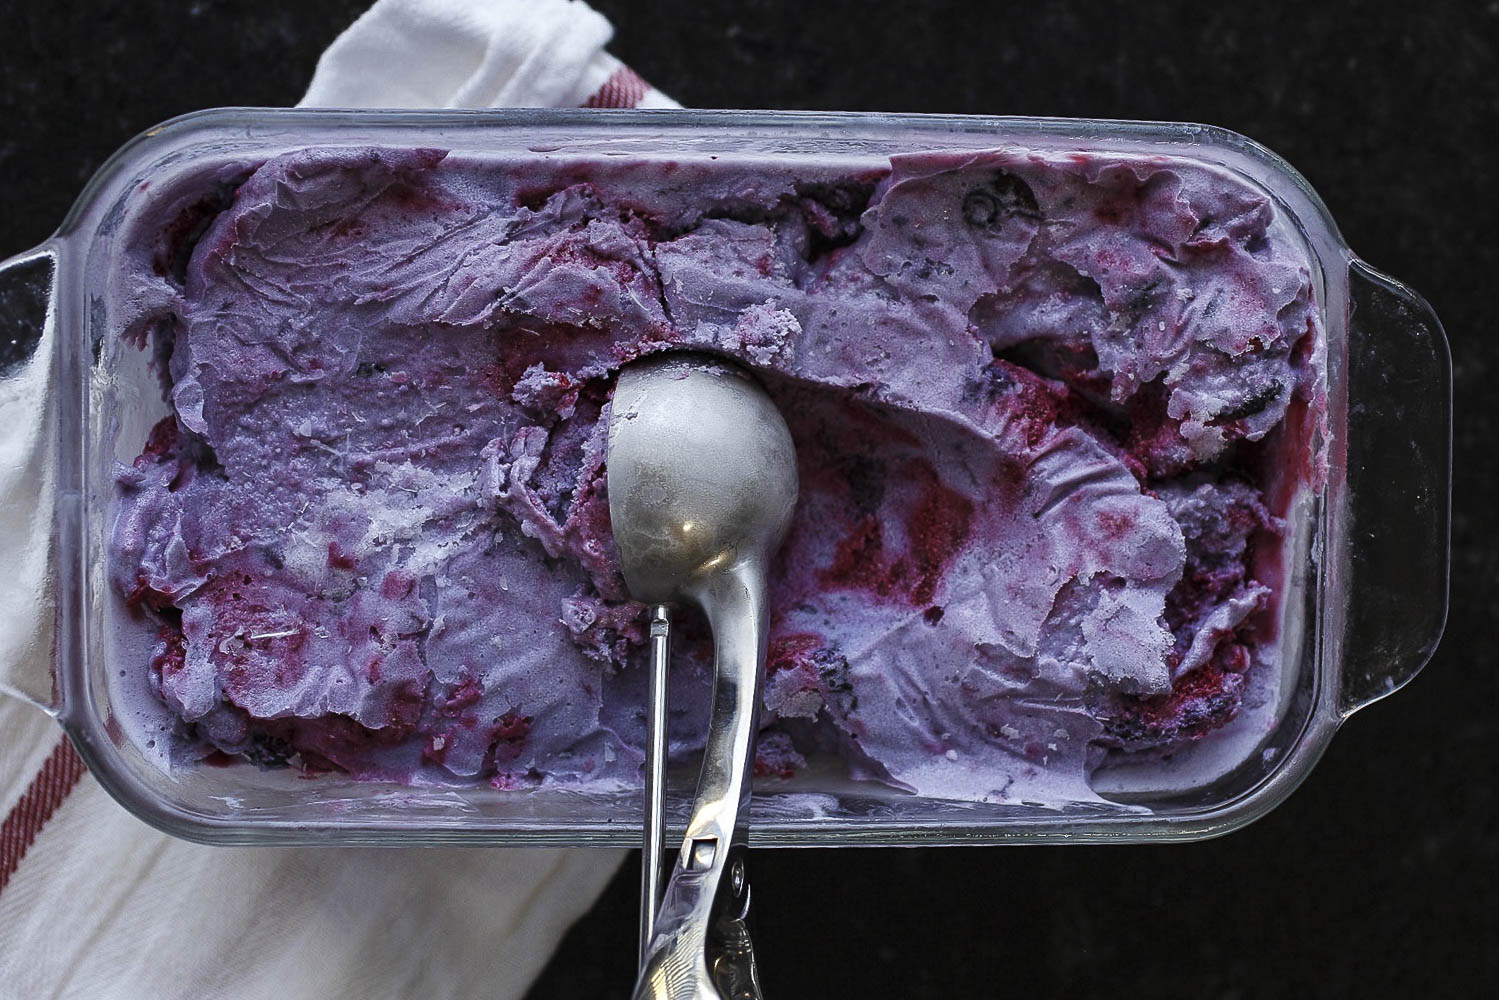 Roasted Blueberry Ice Cream with Raspberry Swirl